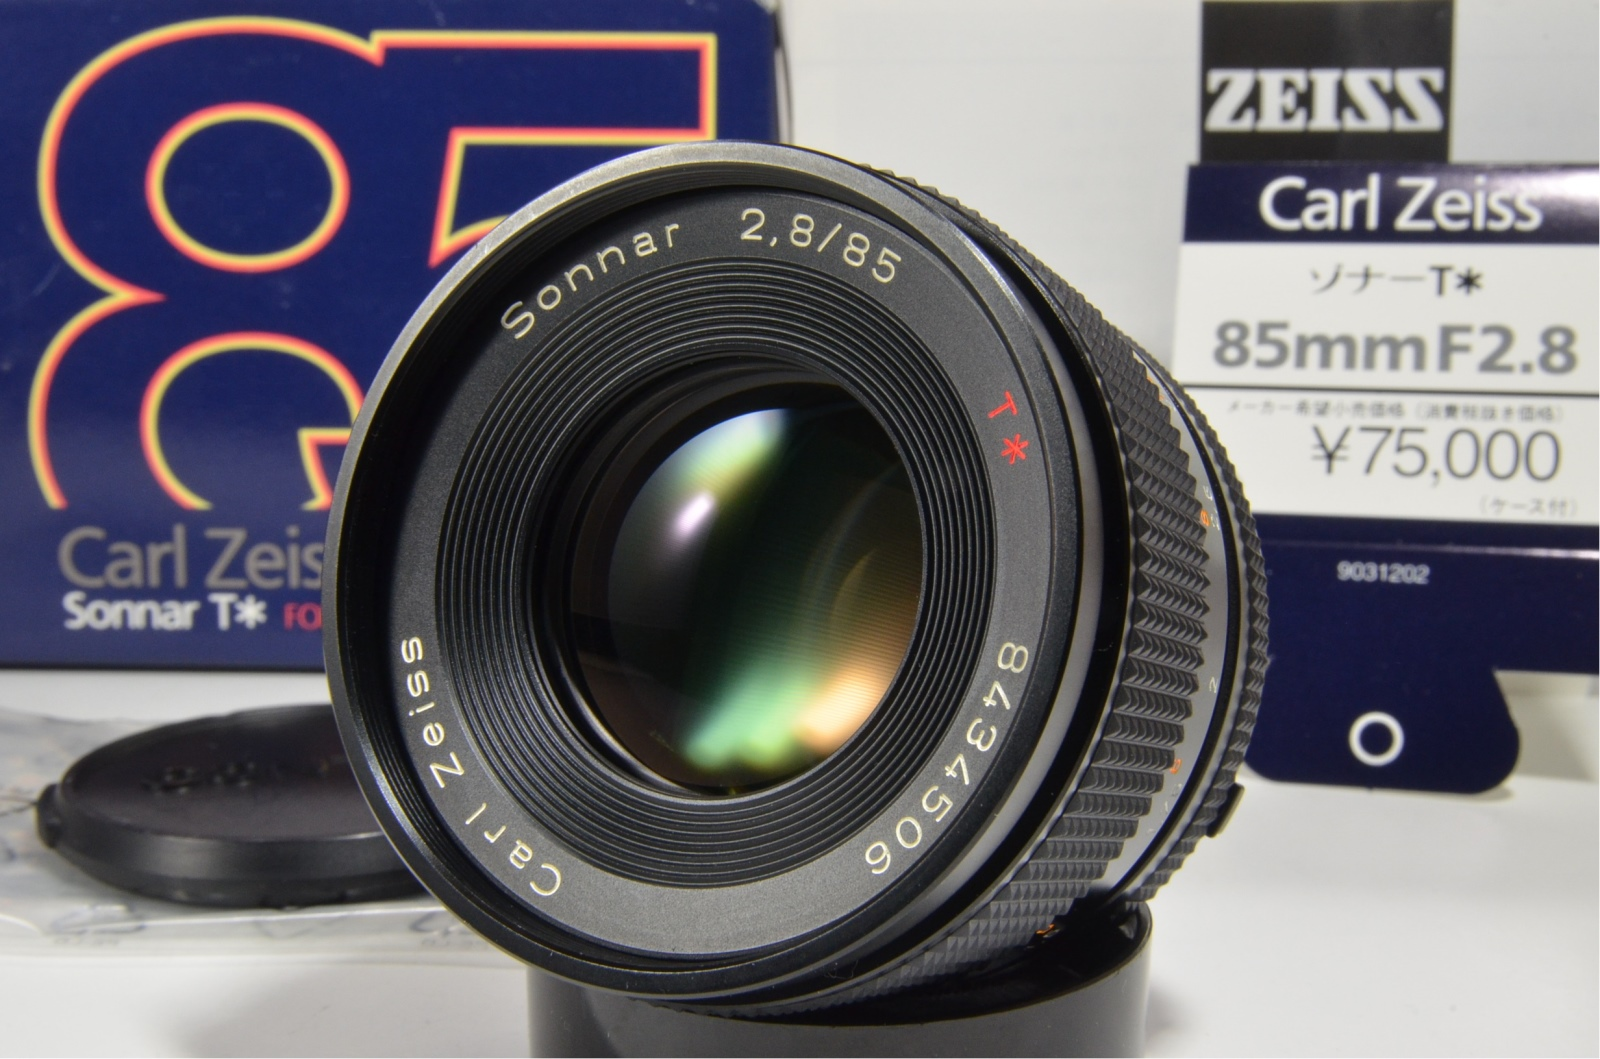 contax carl zeiss sonnar t* 85mm f2.8 mmg